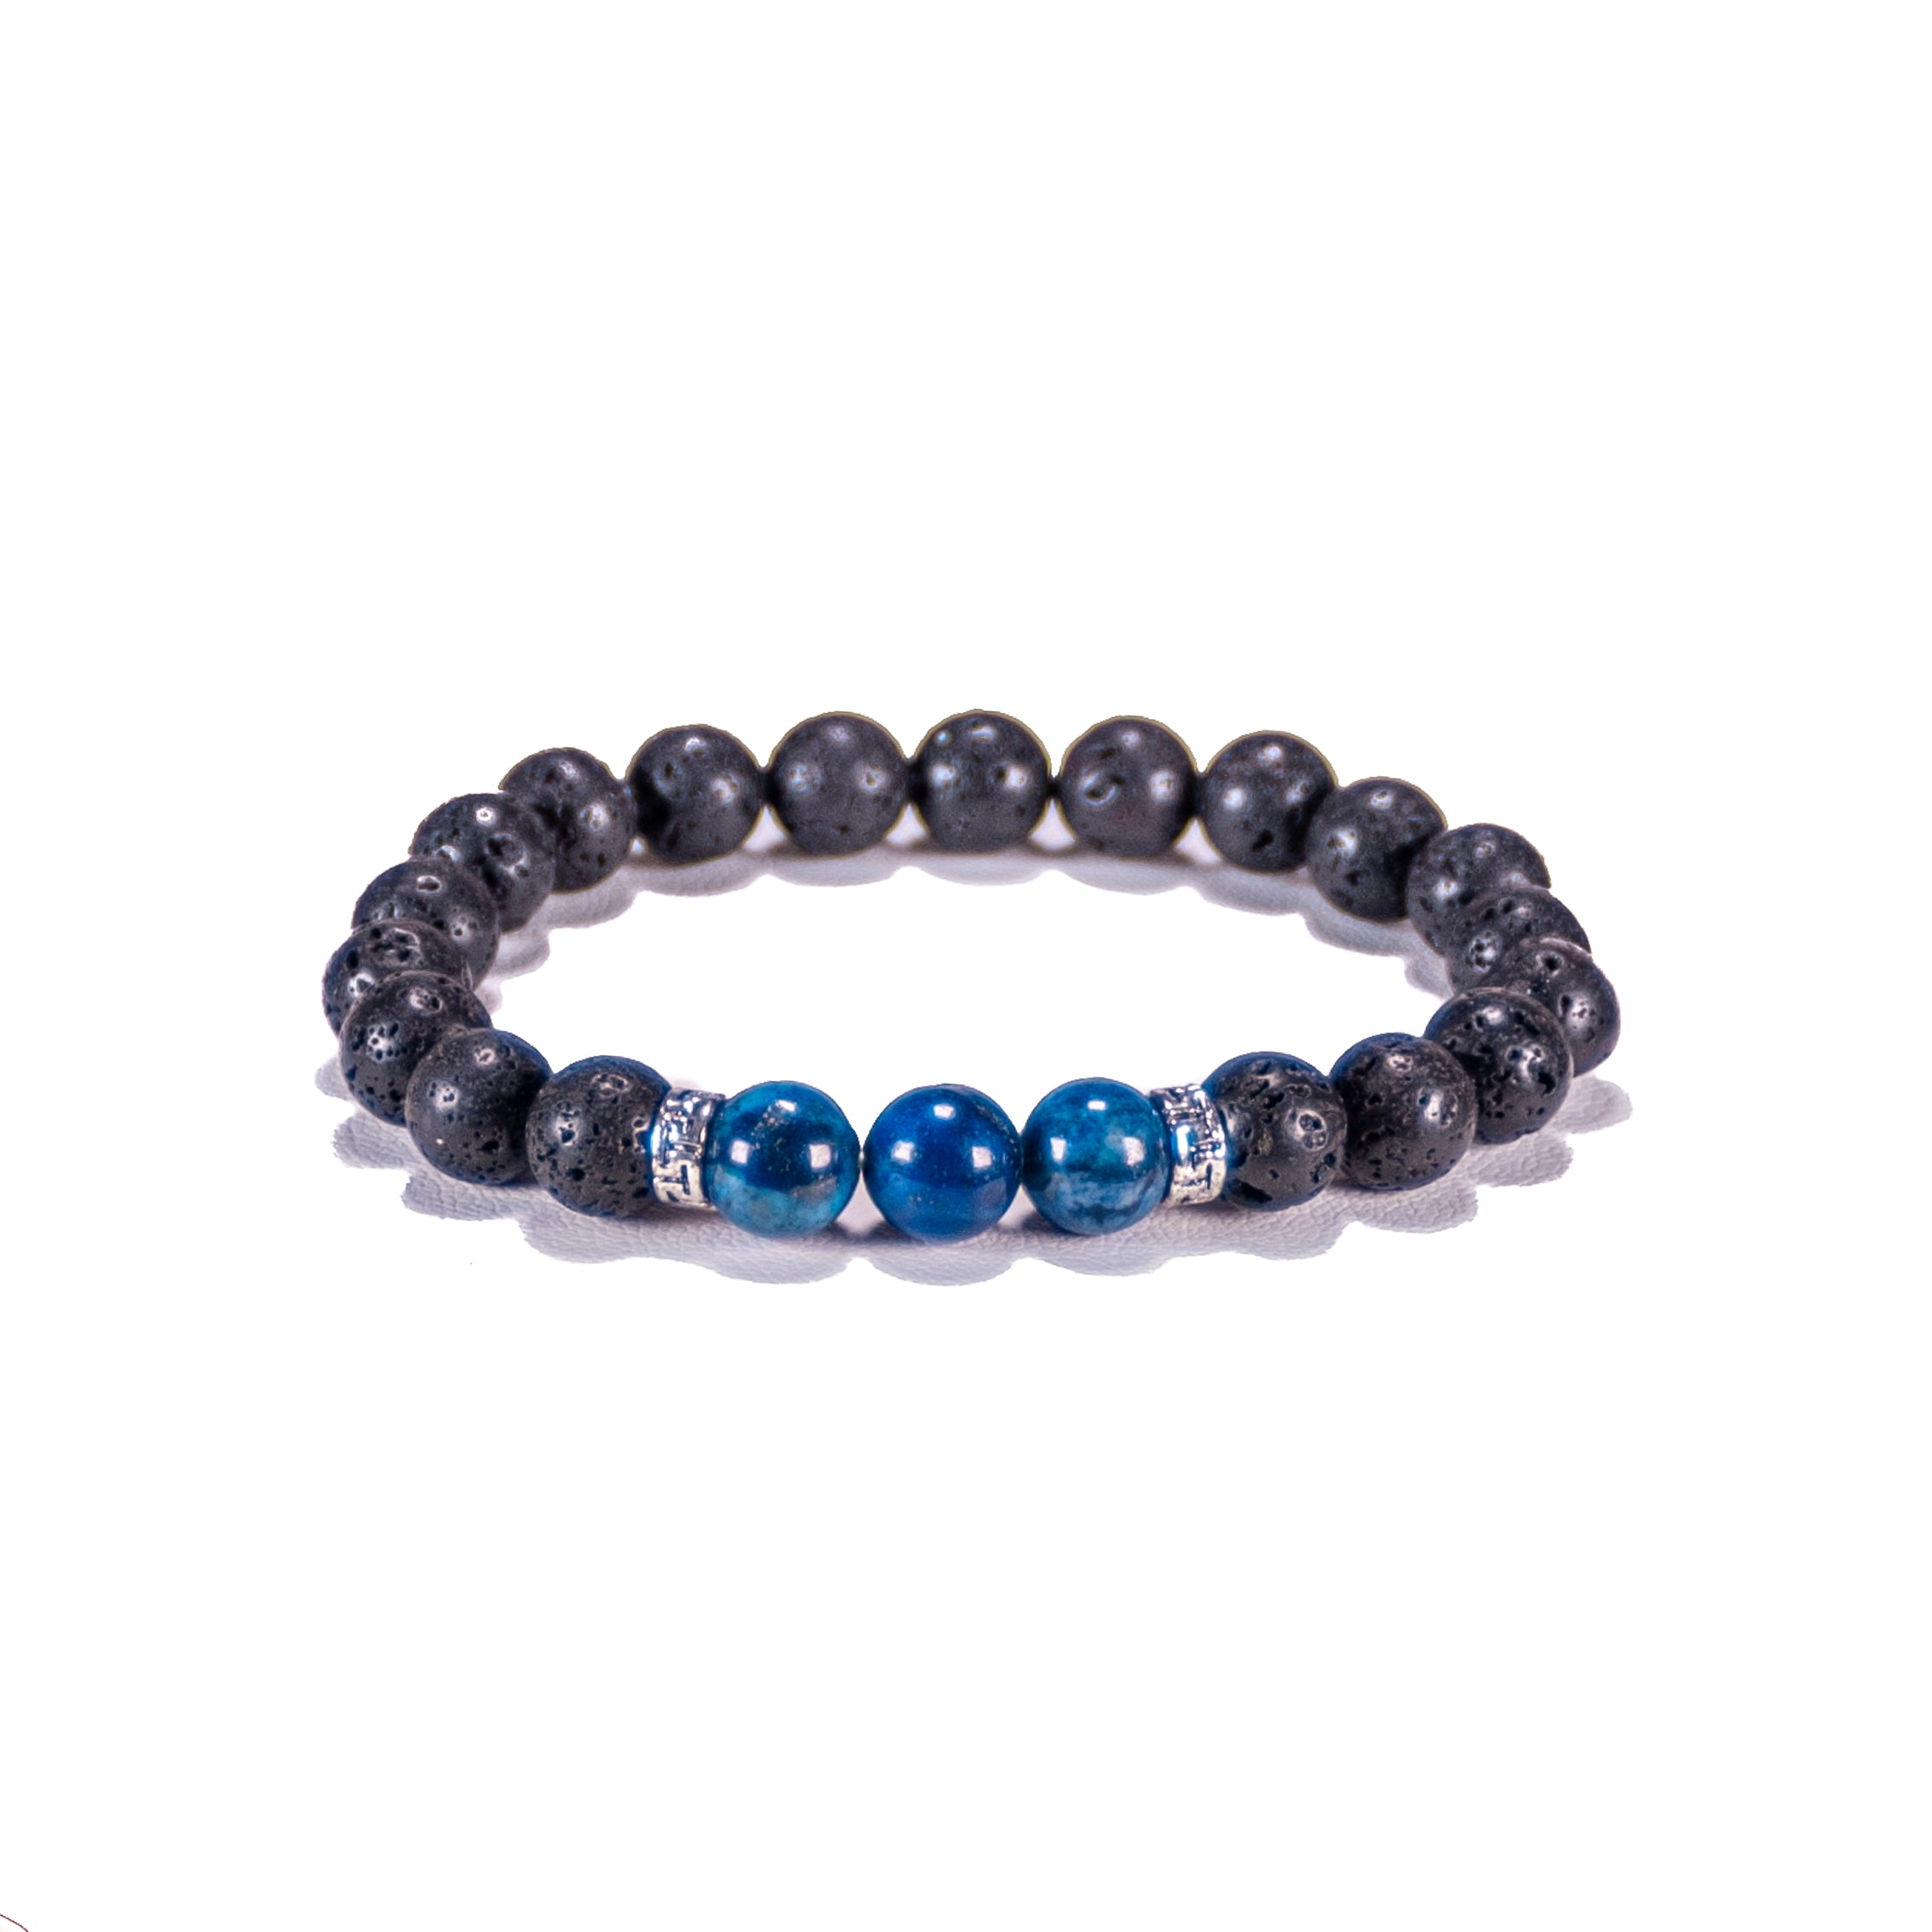 Lapis Lazuli Gemstone Beads on Lava Rock Beads Bracelet